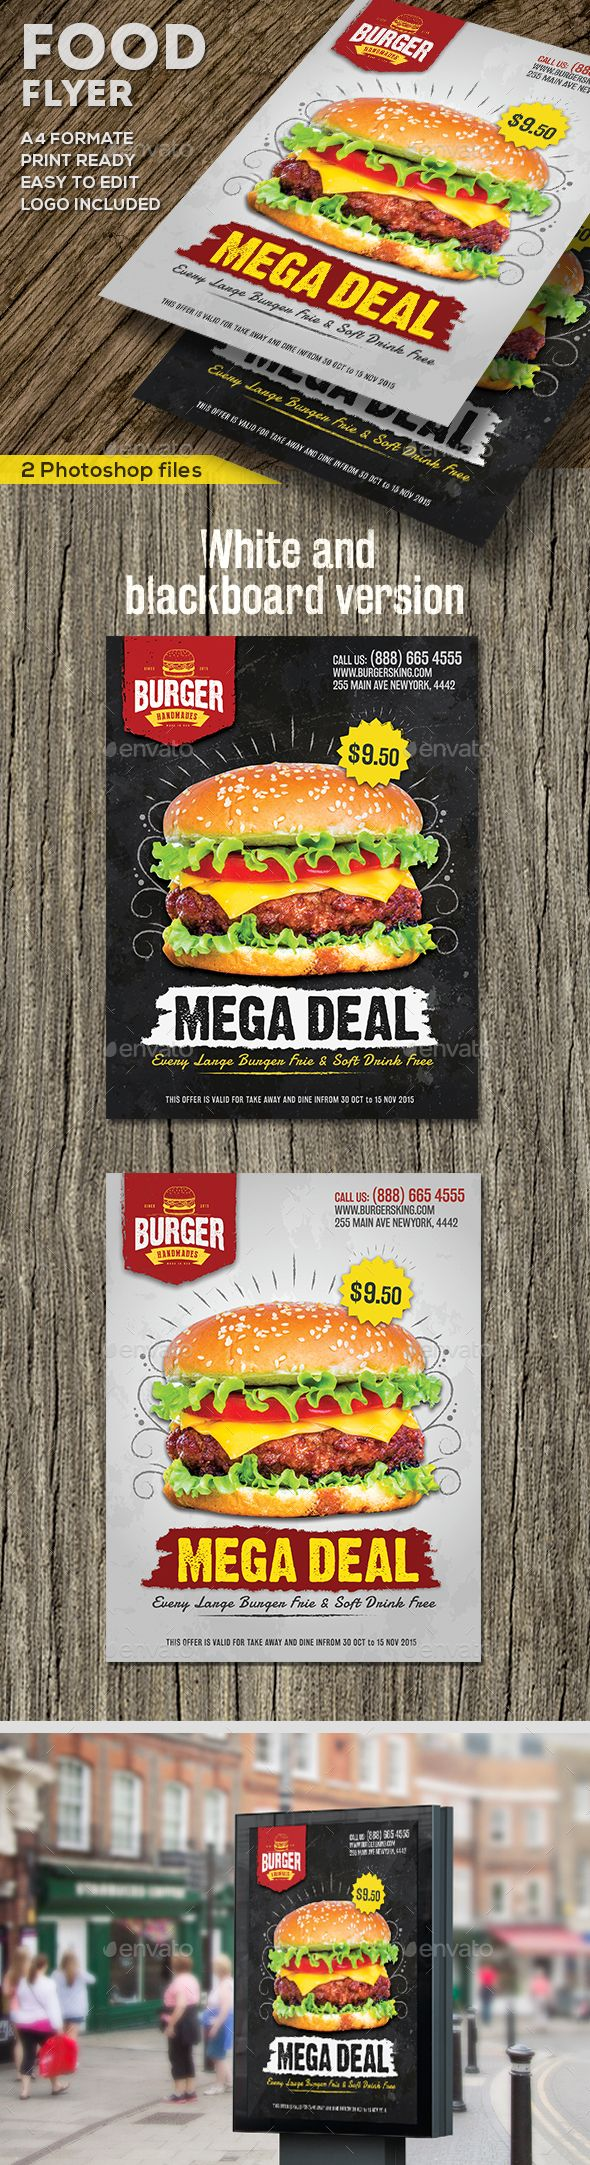 Food Promotional Flyer — Photoshop PSD #burger • Download ➝ https://graphicriver.net/item/food-promotional-flyer/19259585?ref=pxcr